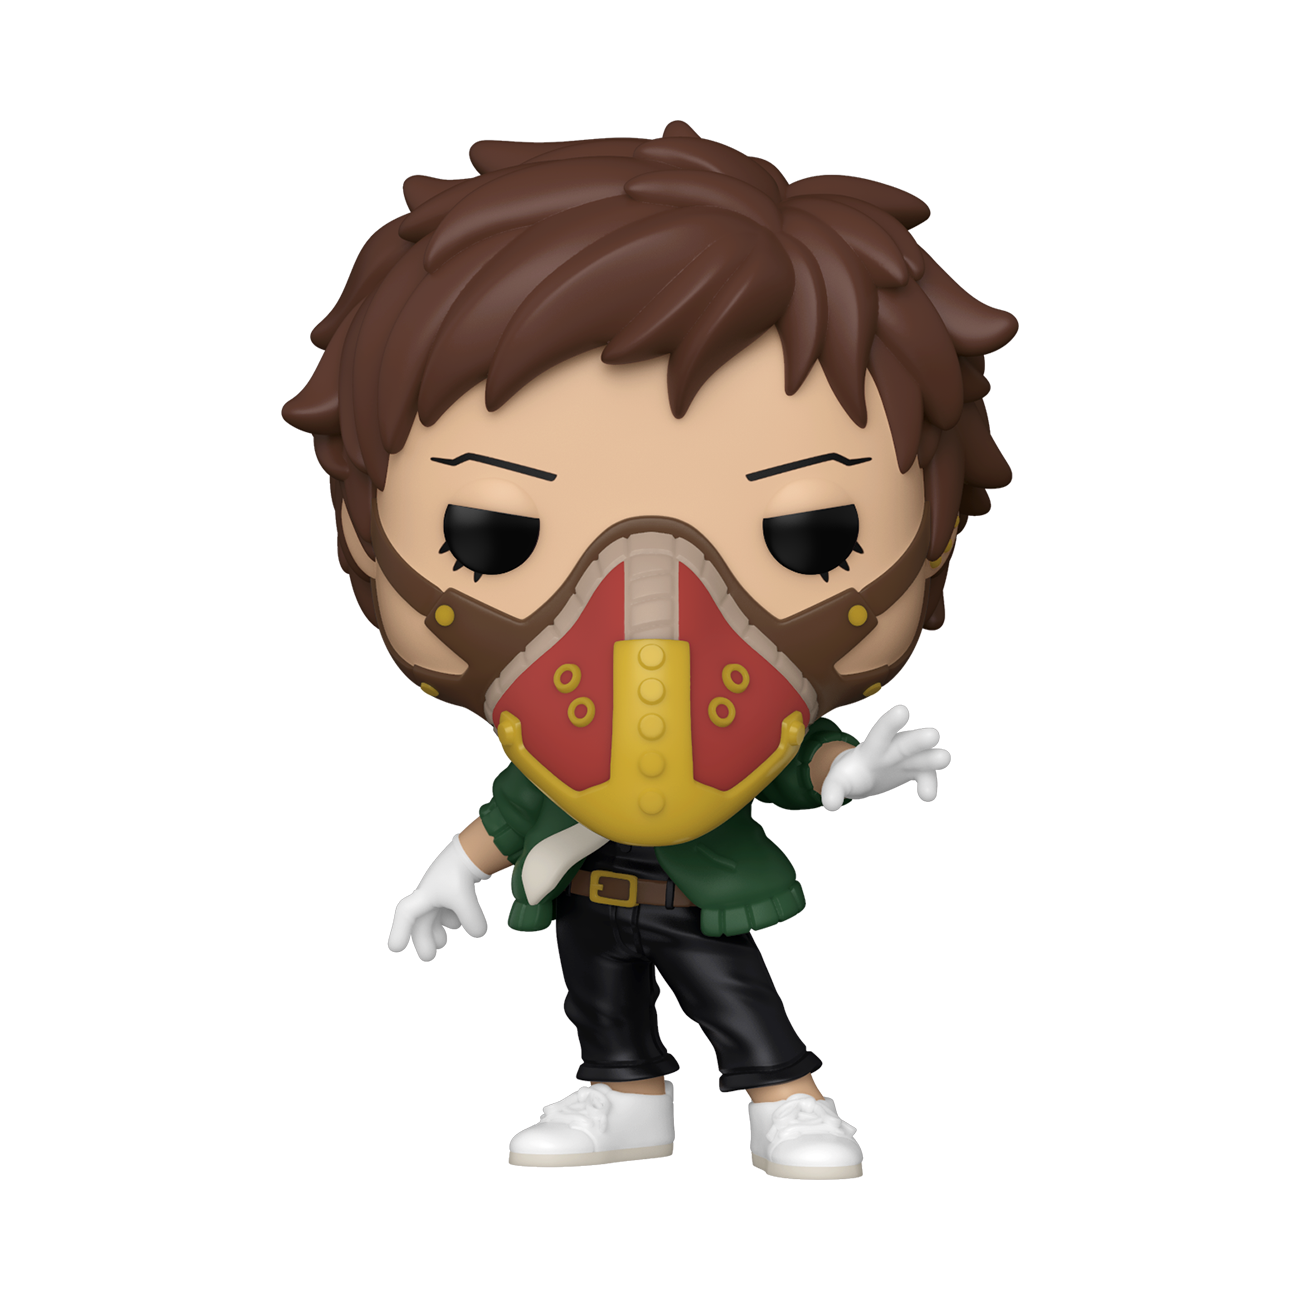 Funko Pop Animation: My Hero Academia - Kai Chisaki Overhaul